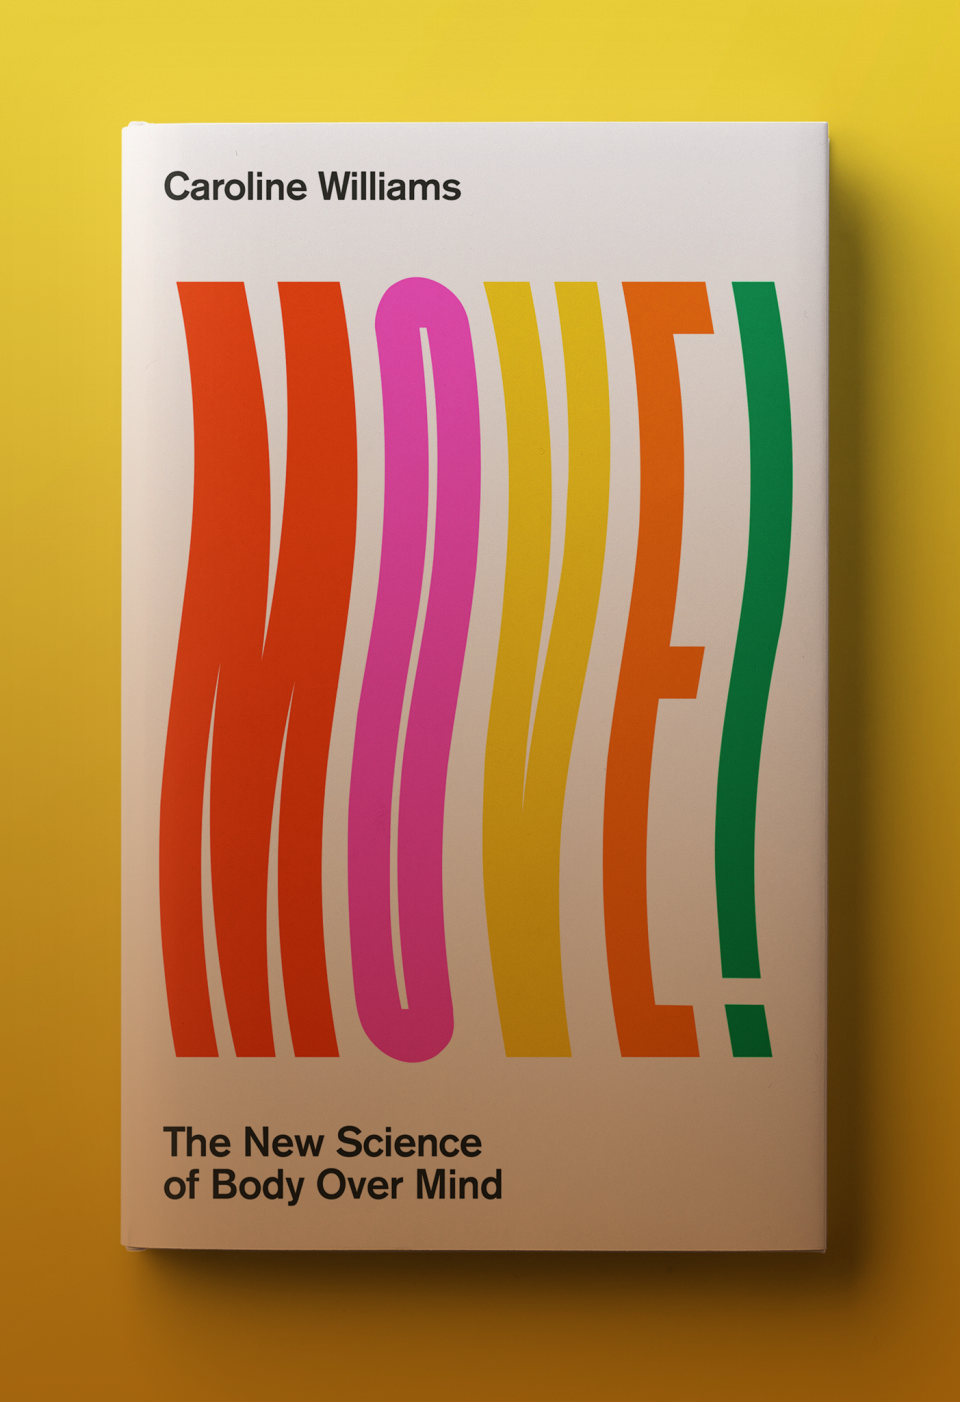 Move! The New Science of Body Over Mind. A book by science writer and author Caroline Williams. Strengthen your core to reduce stress and anxiety